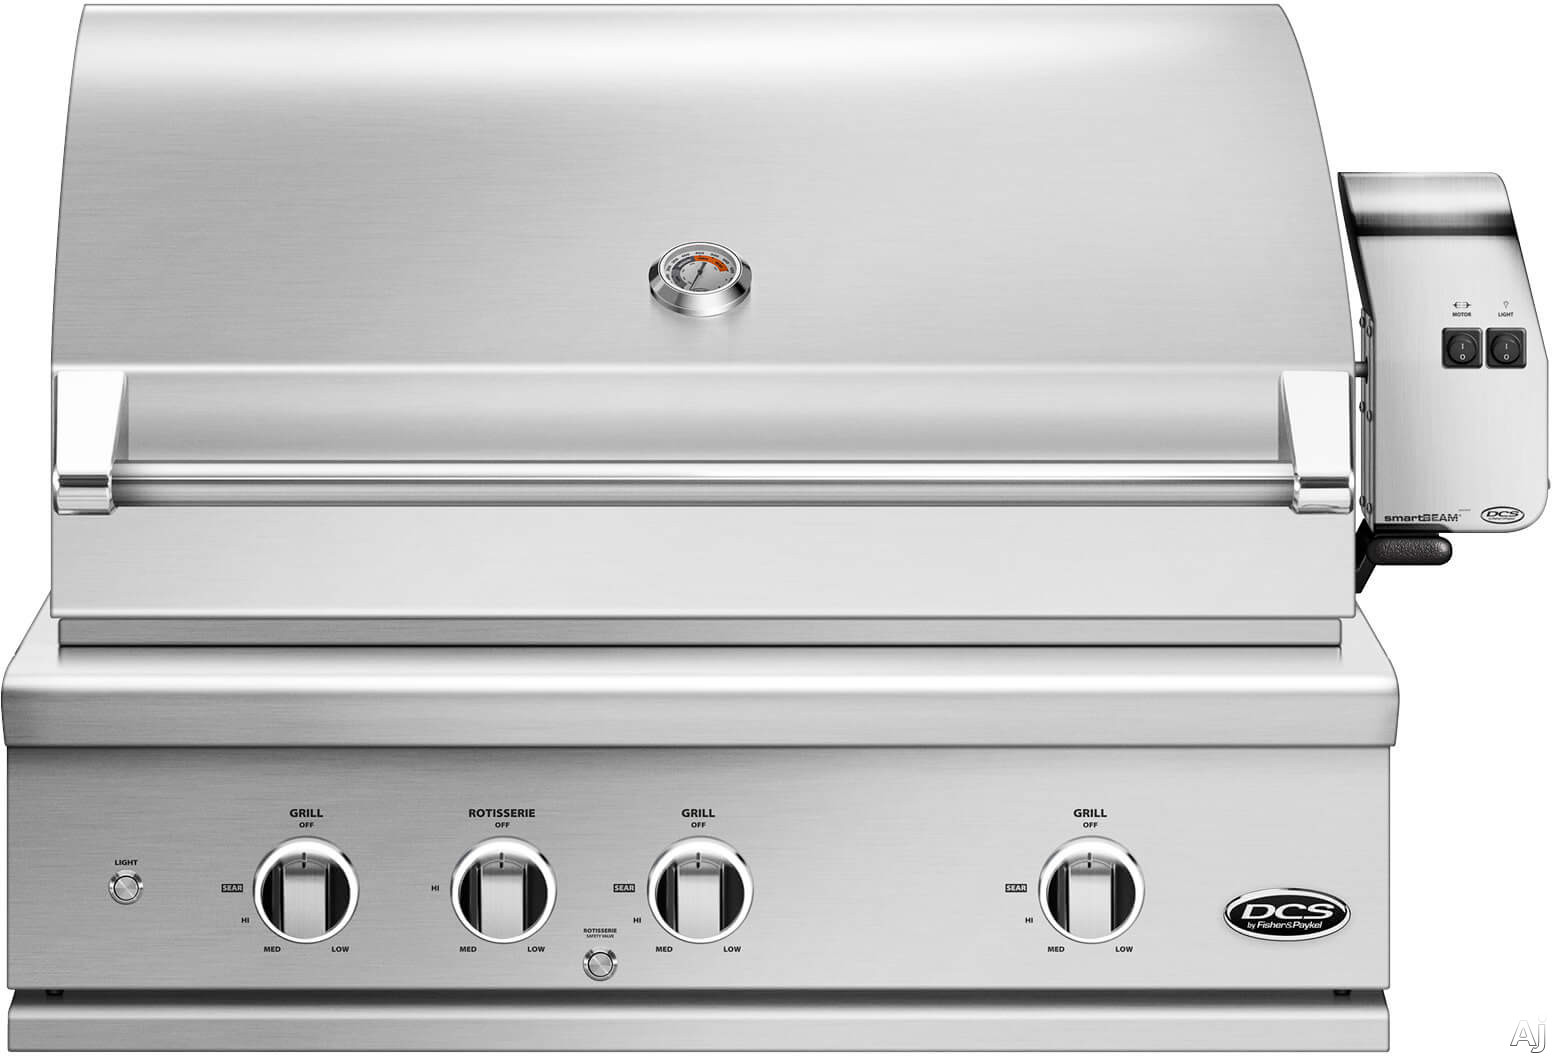 DCS Series 9 Evolution BE136RCN 36 Inch Built-In Grill with Infrared Rotisserie, Charcoal Smoker Tray, Extra Cooking Area, Easy Lift Hood, Intuitive Lighting and Rack & Tool Storage: Natural Gas